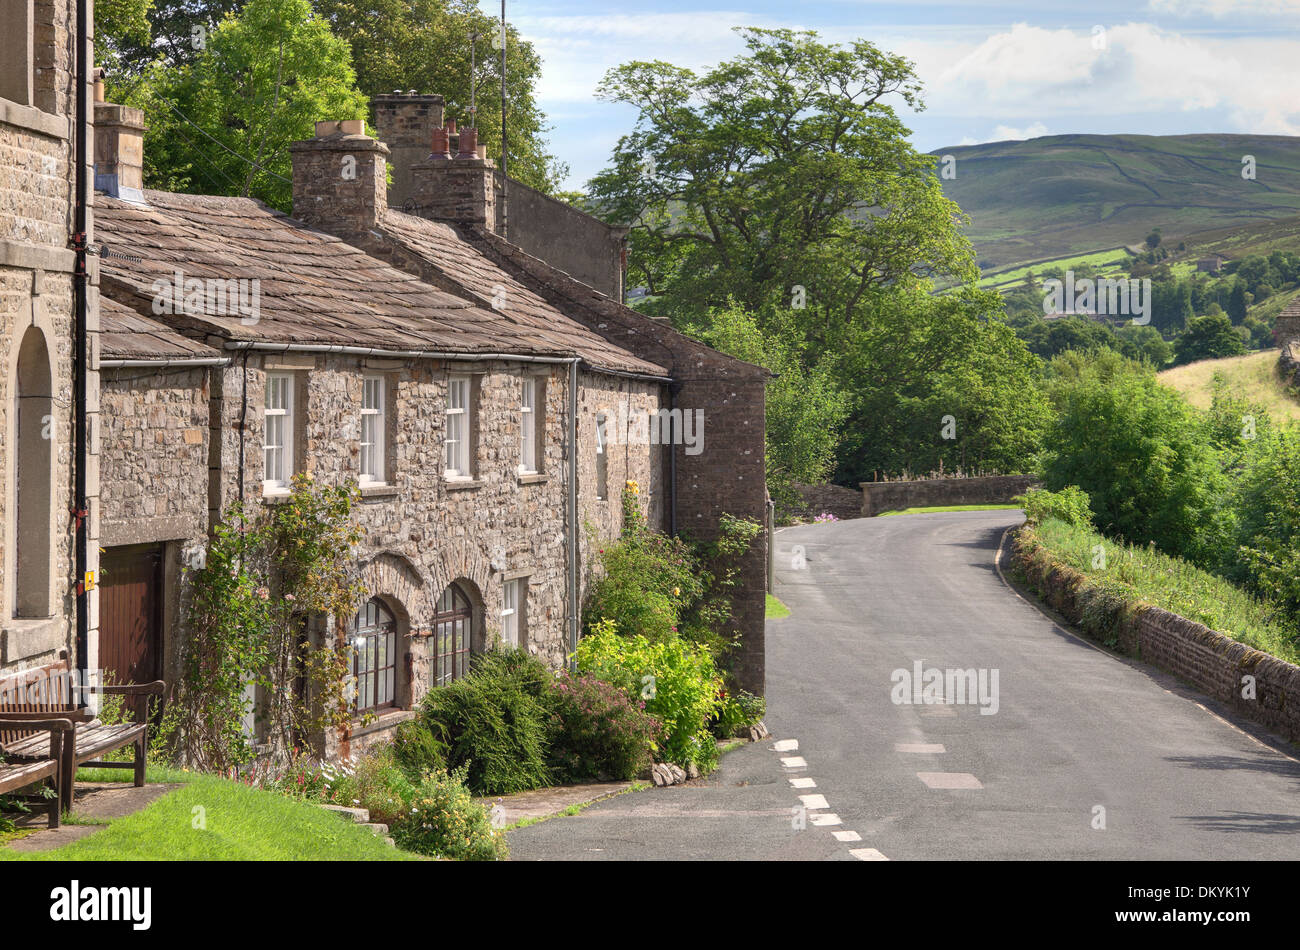 The village of Muker, Swaledale, Yorkshire Dales, England. - Stock Image